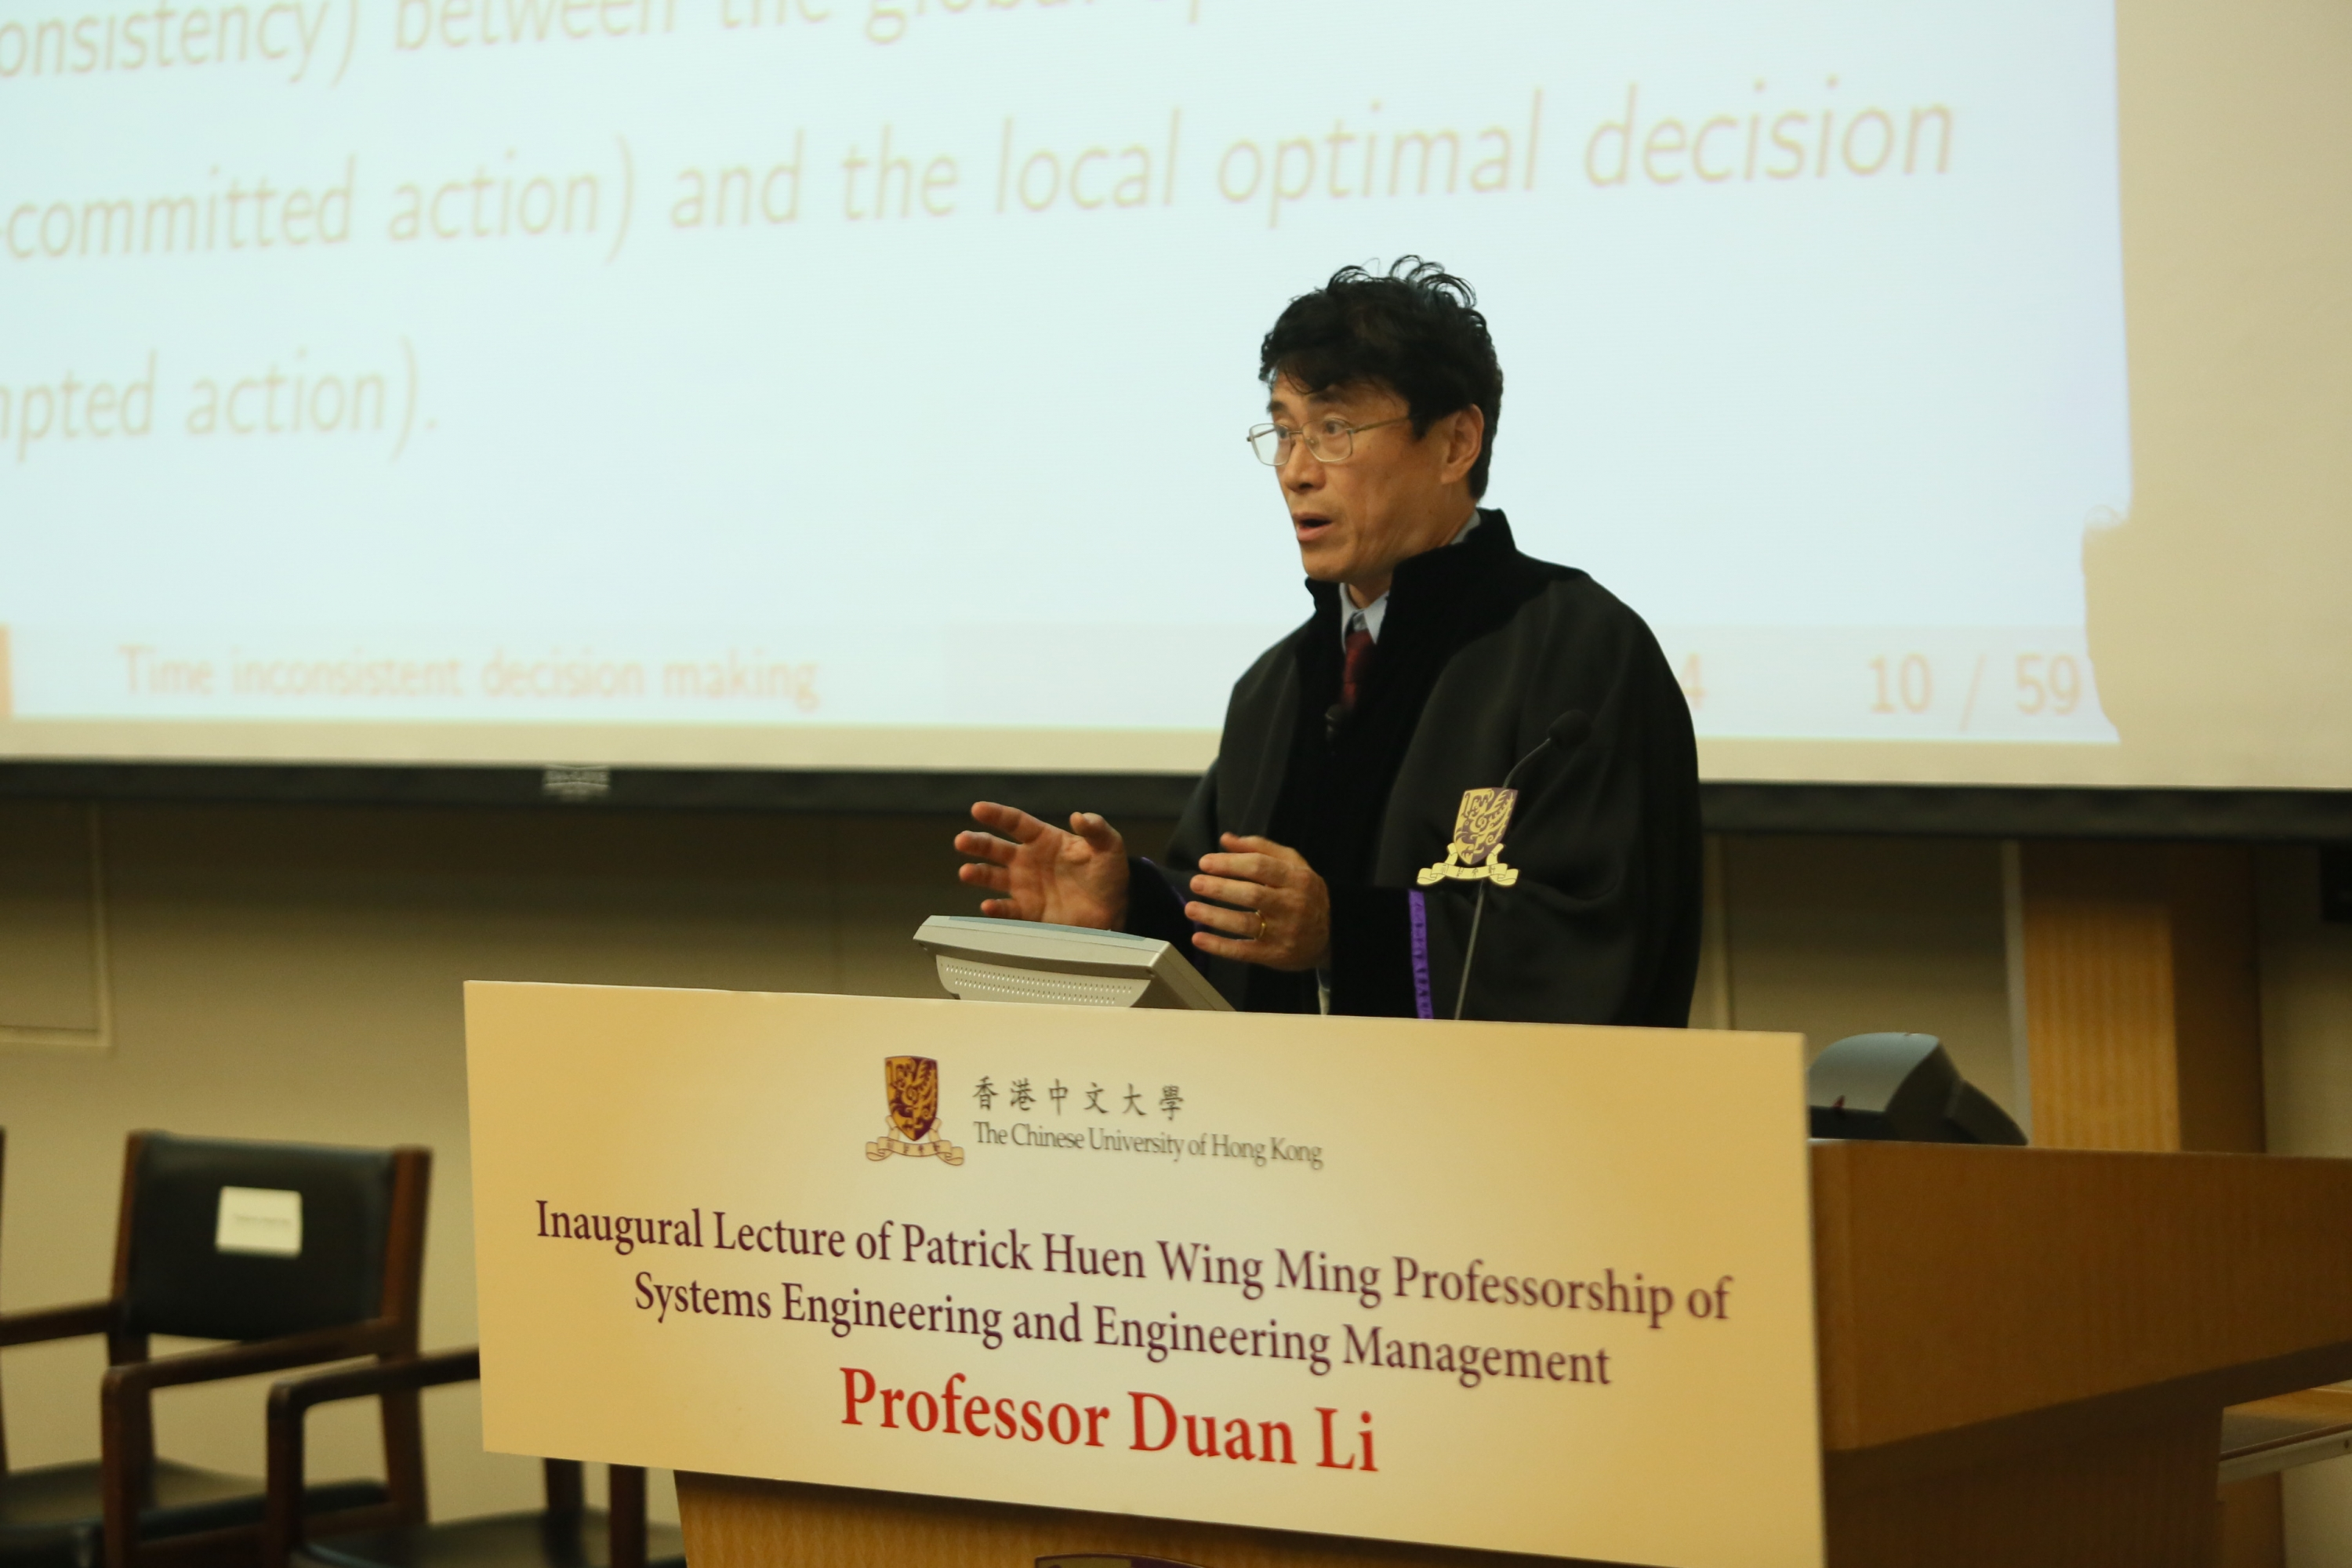 Prof. Duan Li delivers his inaugural lecture as Patrick Huen Wing Ming Professor of Systems Engineering and Engineering Management.